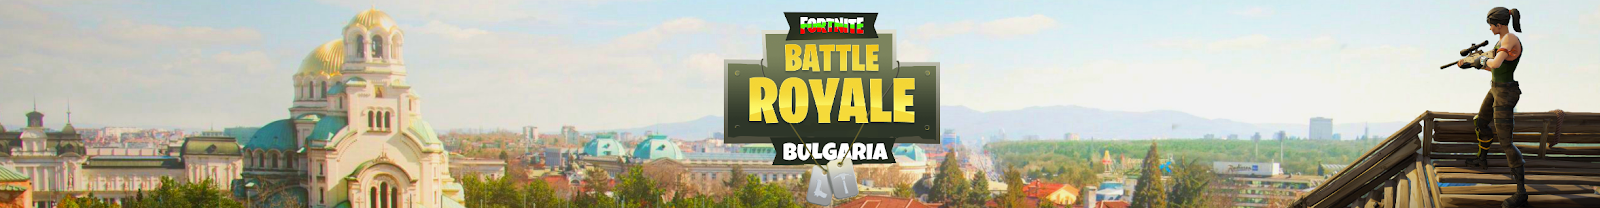 Fortnite-Bulgaria